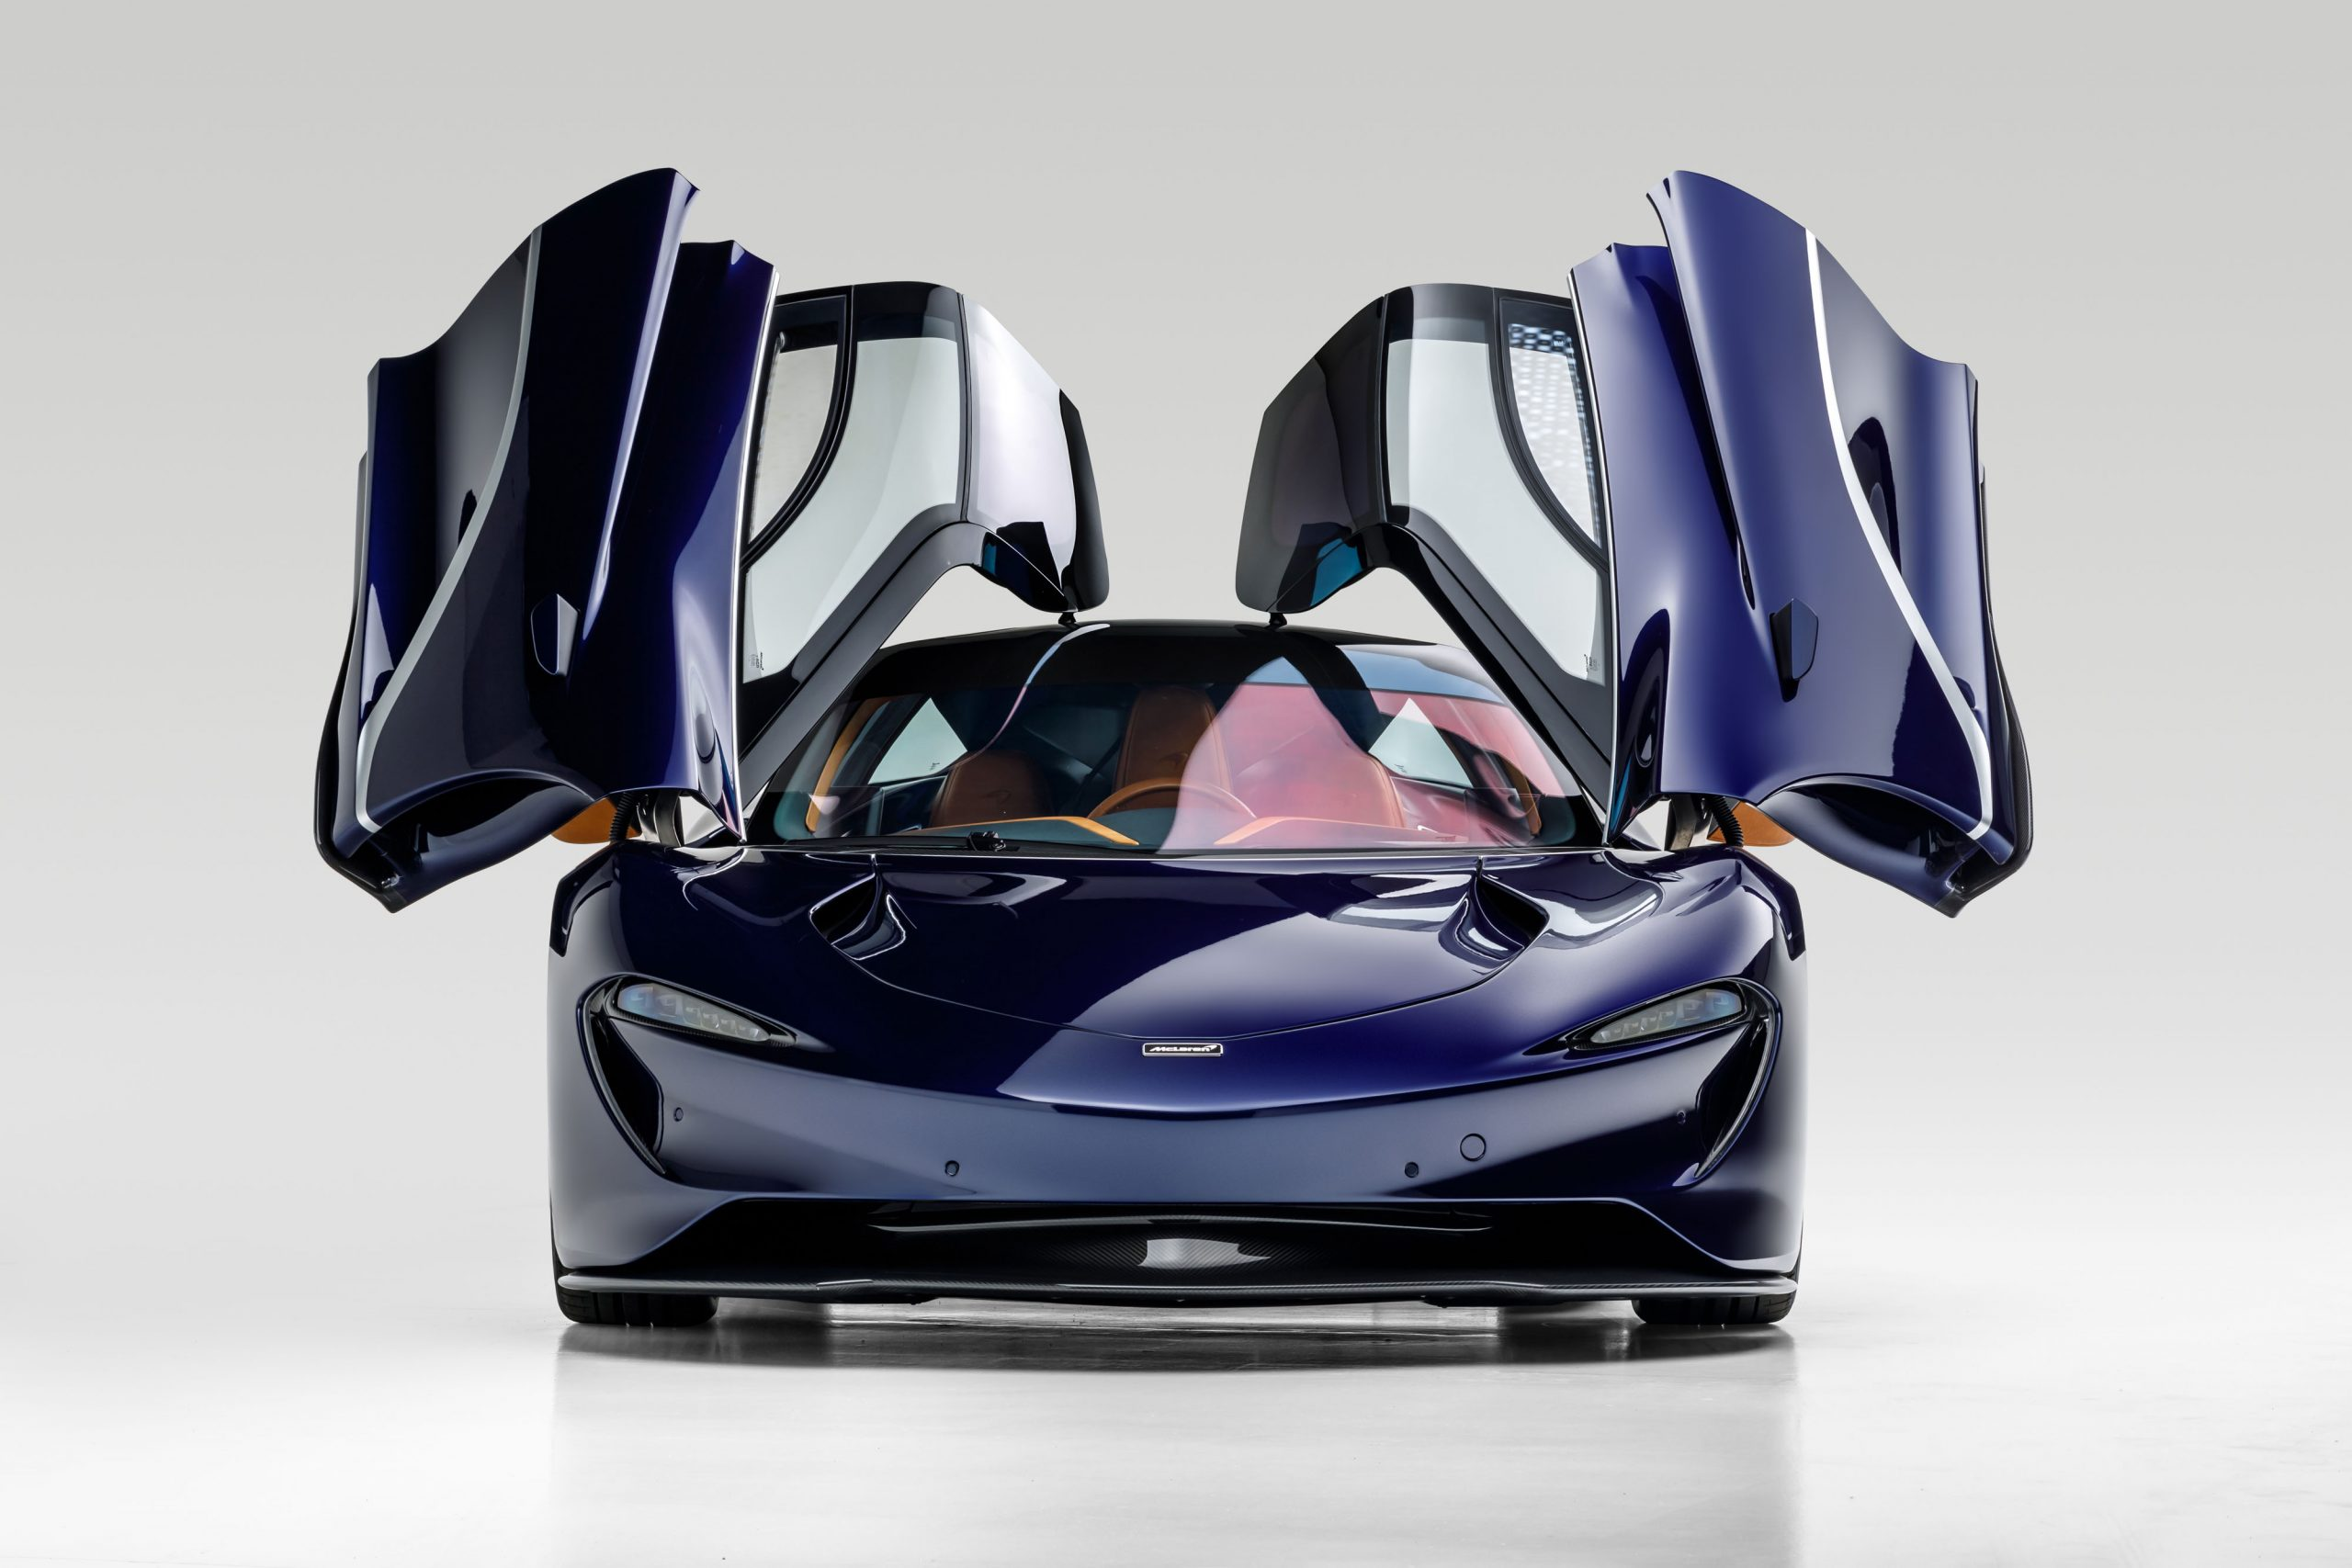 McLaren Speedtail front doors up